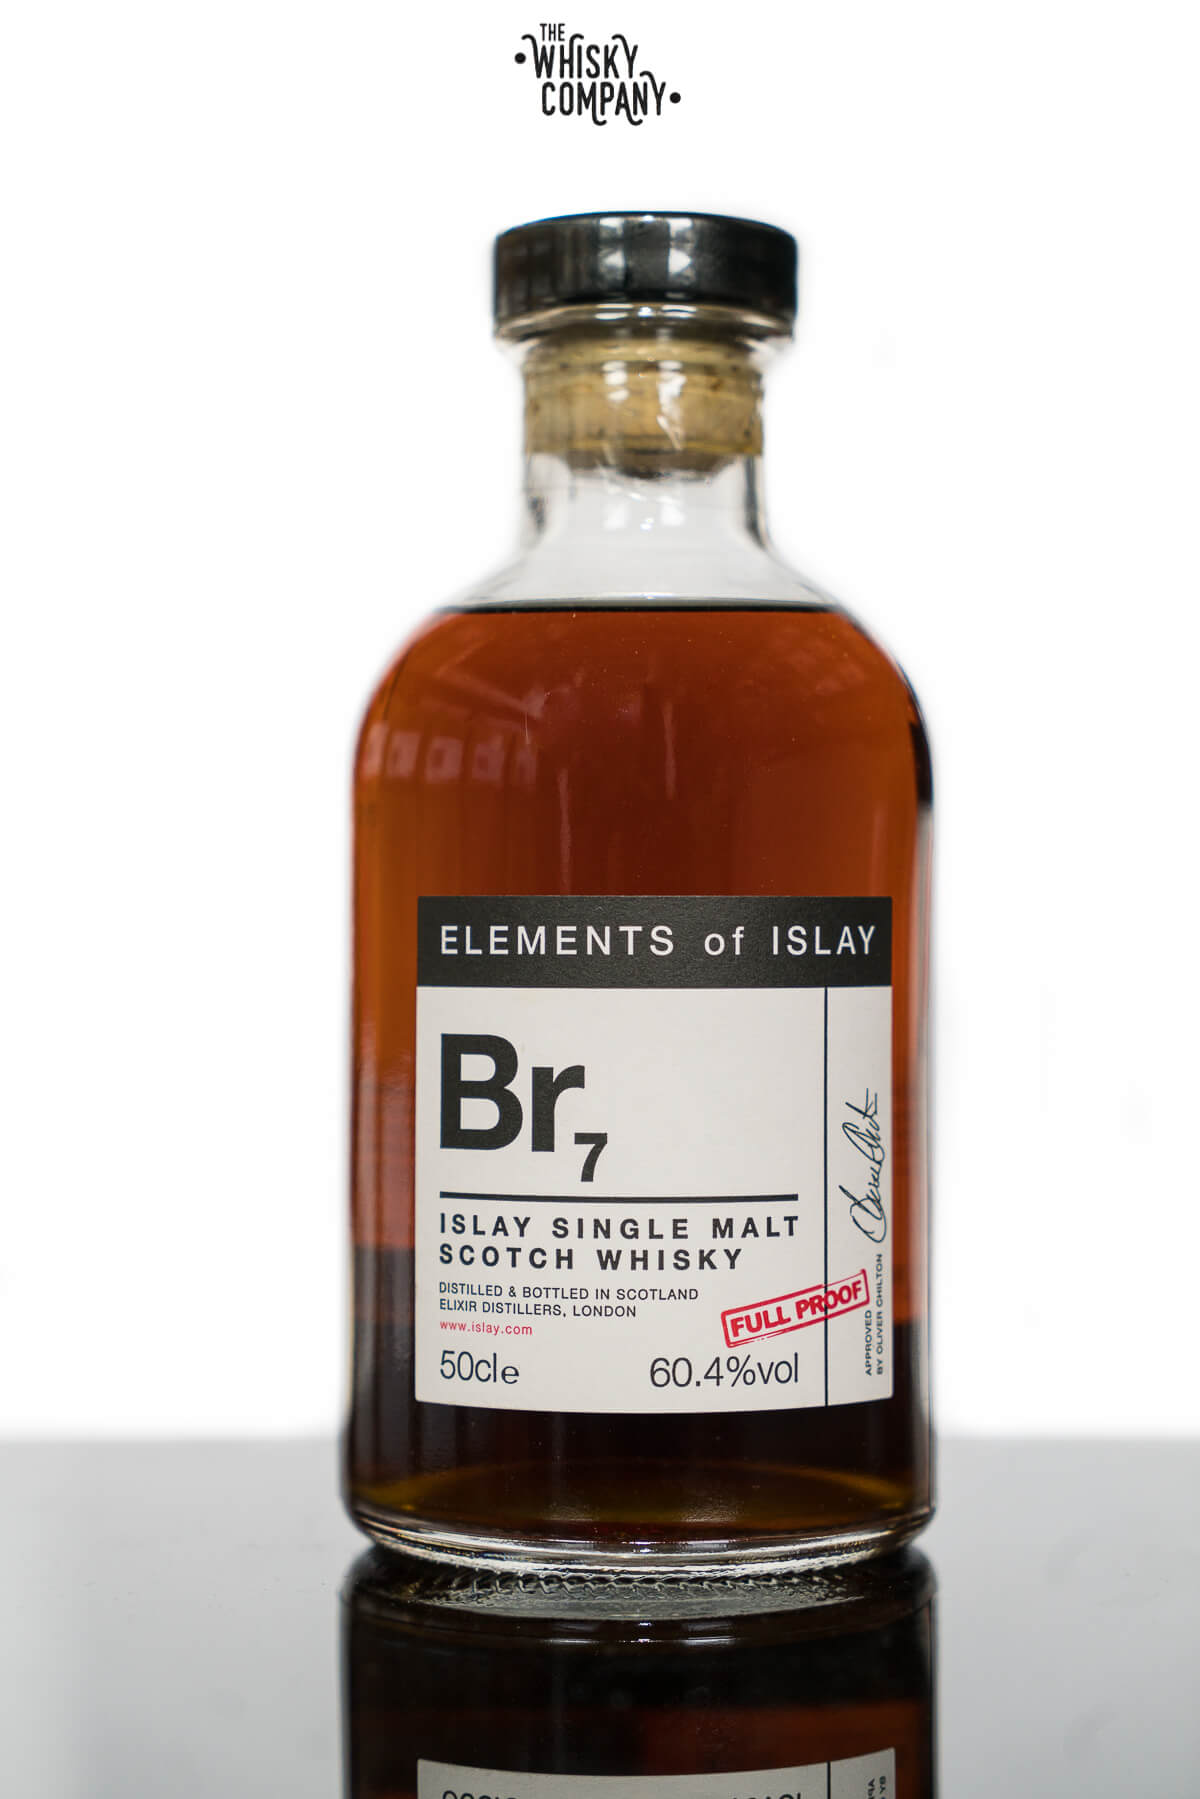 Elements Of Islay Br7 Islay Single Malt Scotch Whisky (500ml)